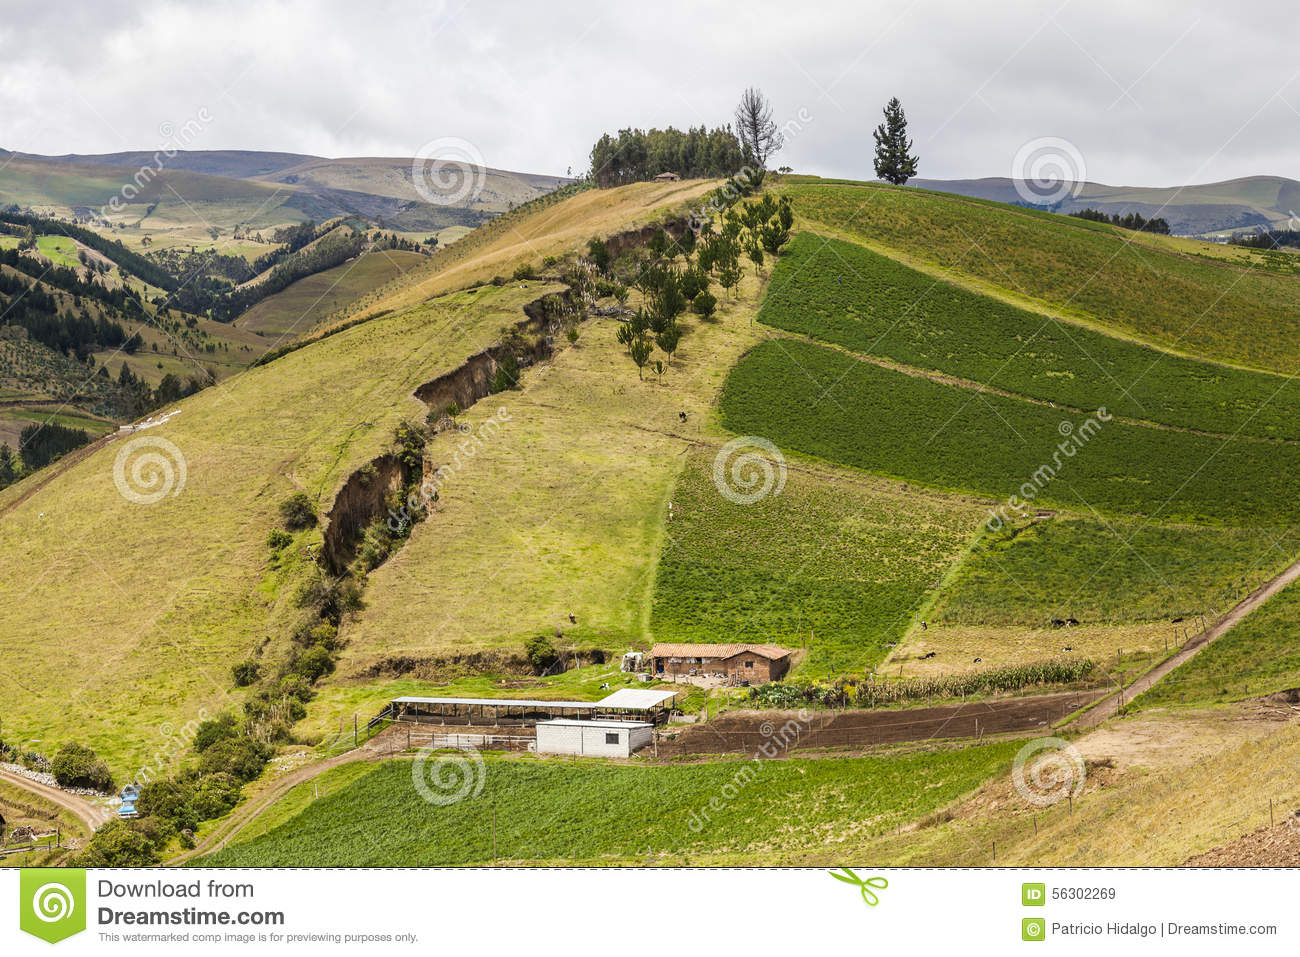 Cultivated fields on slopes